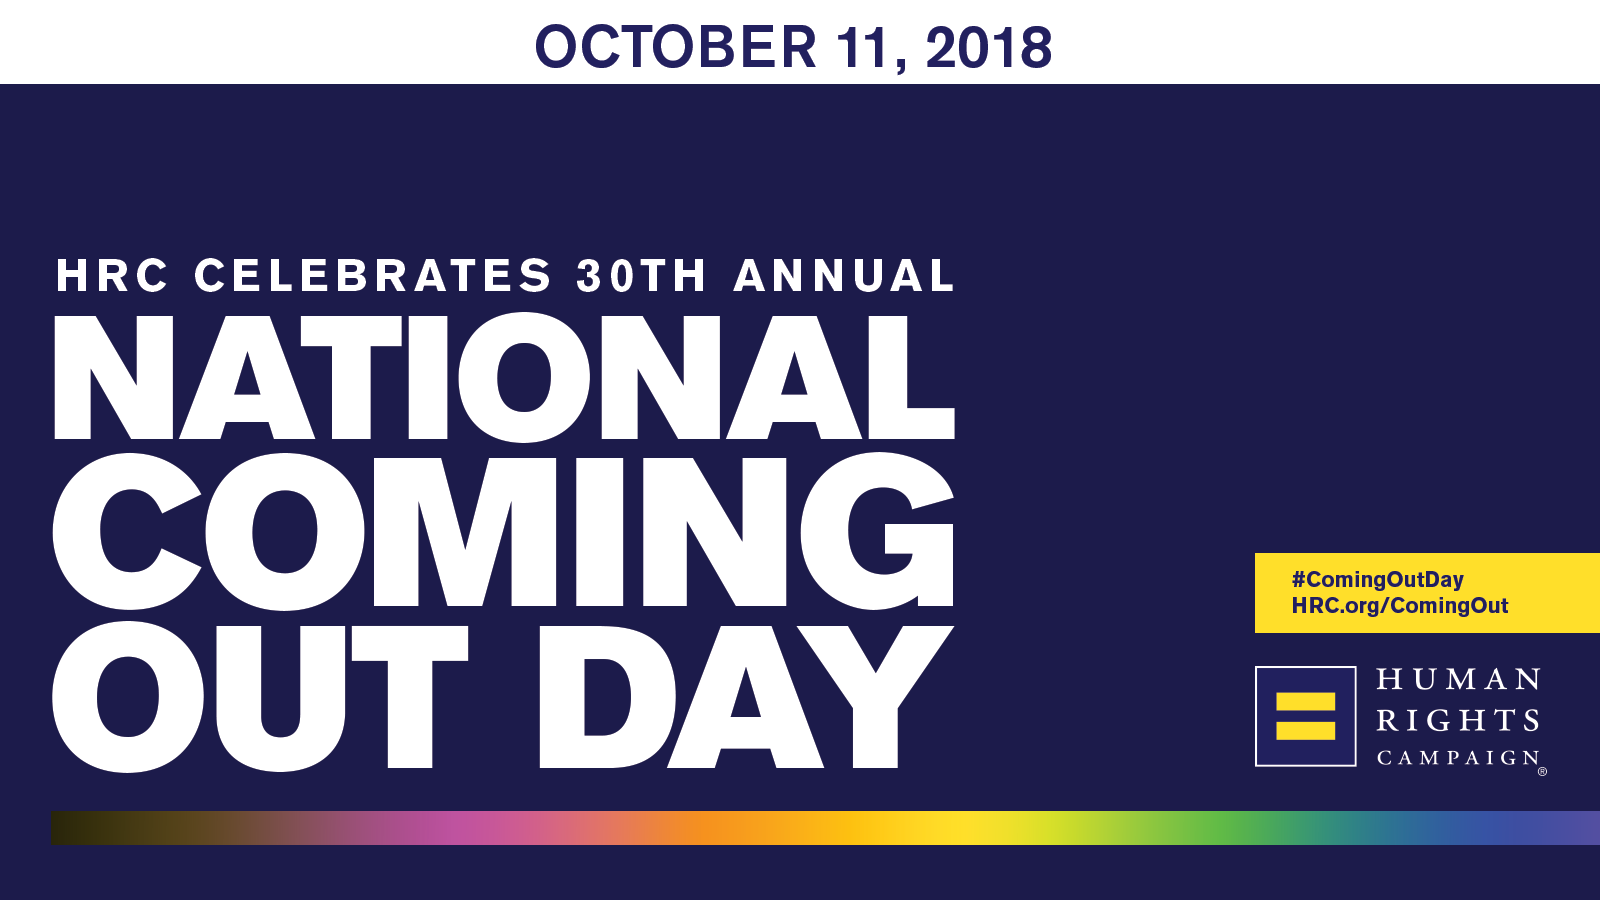 Hrc Celebrates Th Annual National Coming Out Day